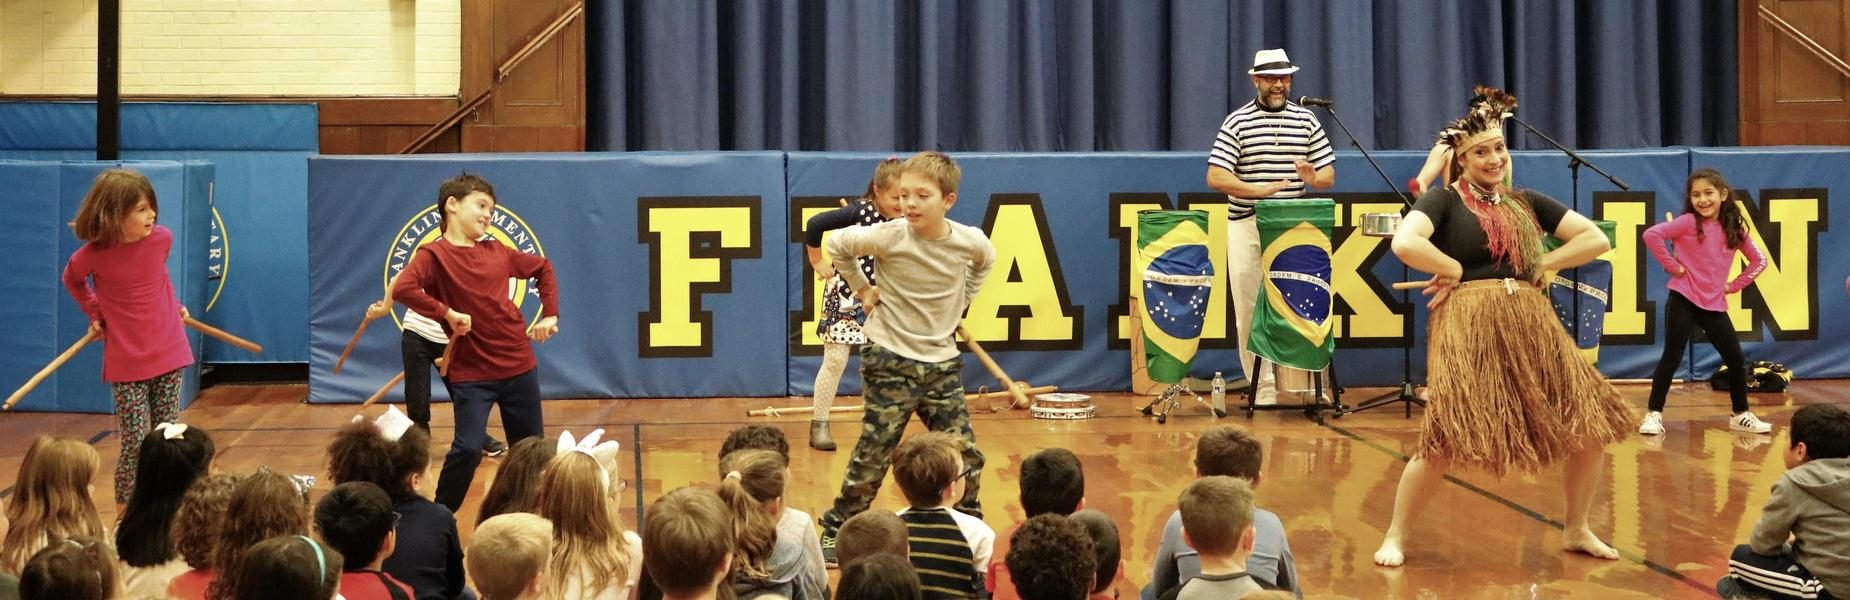 Franklin School students enjoy a lively performance by Ginga Brasileira on Nov. 19 as students explore the history, language and culture of Brazil through music and dance.  The dancers enlisted students in performing the Maculele, a stick dance from the Brazilian sugar cane plantations, while showcasing other dances including the Capoeira which combines dance, martial arts, and music. The event is part of a cultural arts program provided by the school's Parent -Teacher Organization.